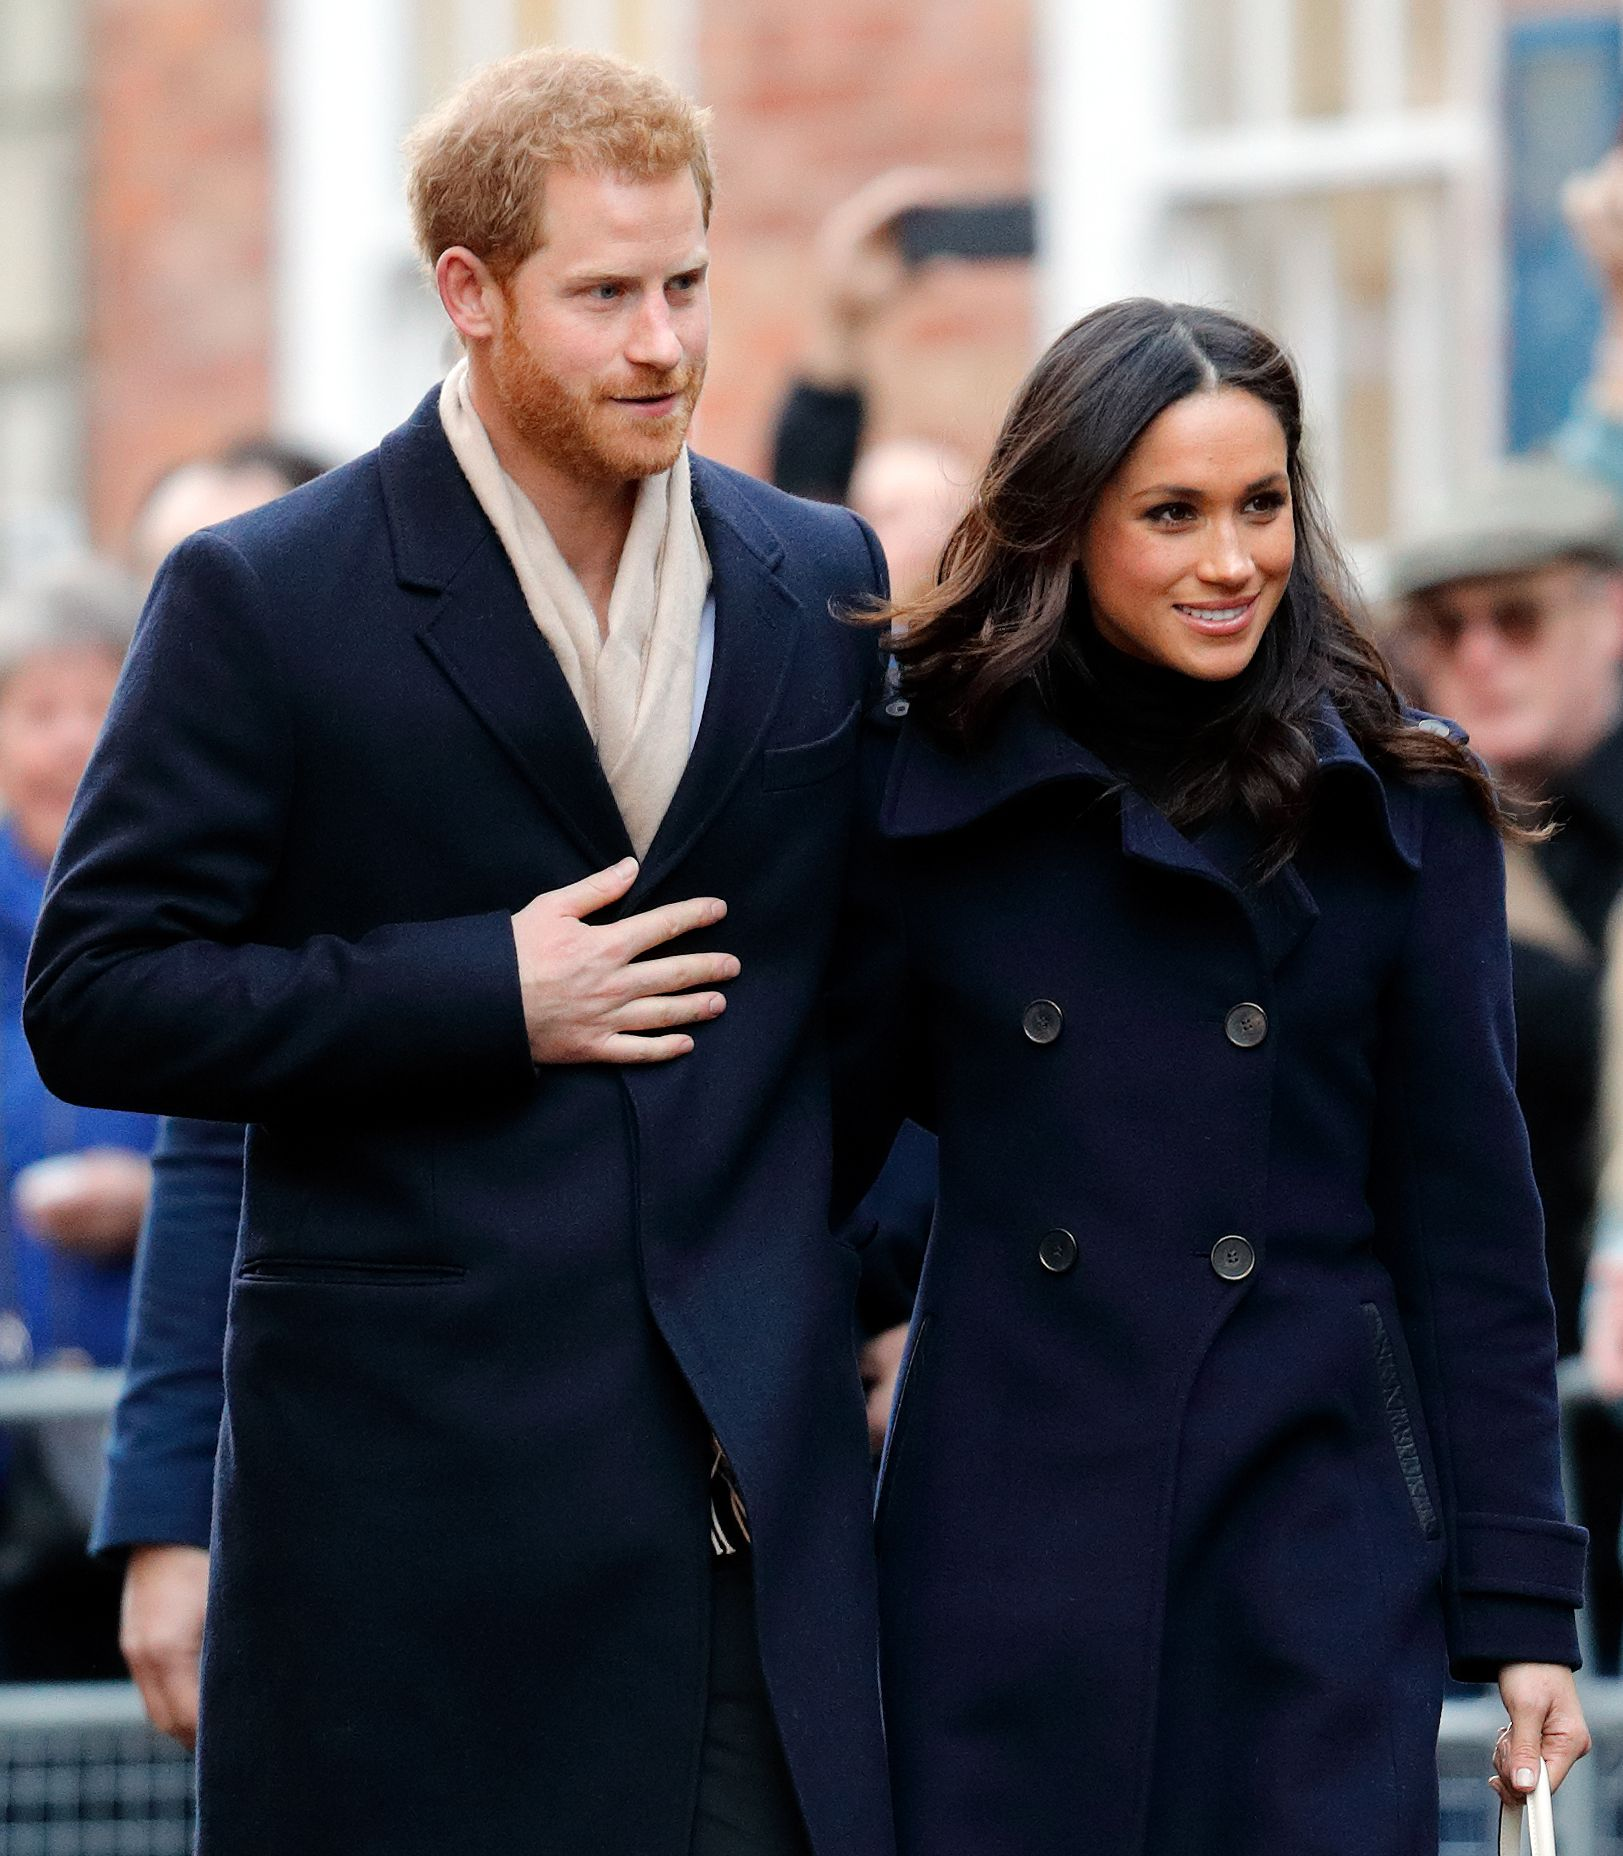 Meghan Markle and Prince Harry Will No Longer Use Their HRH Titles